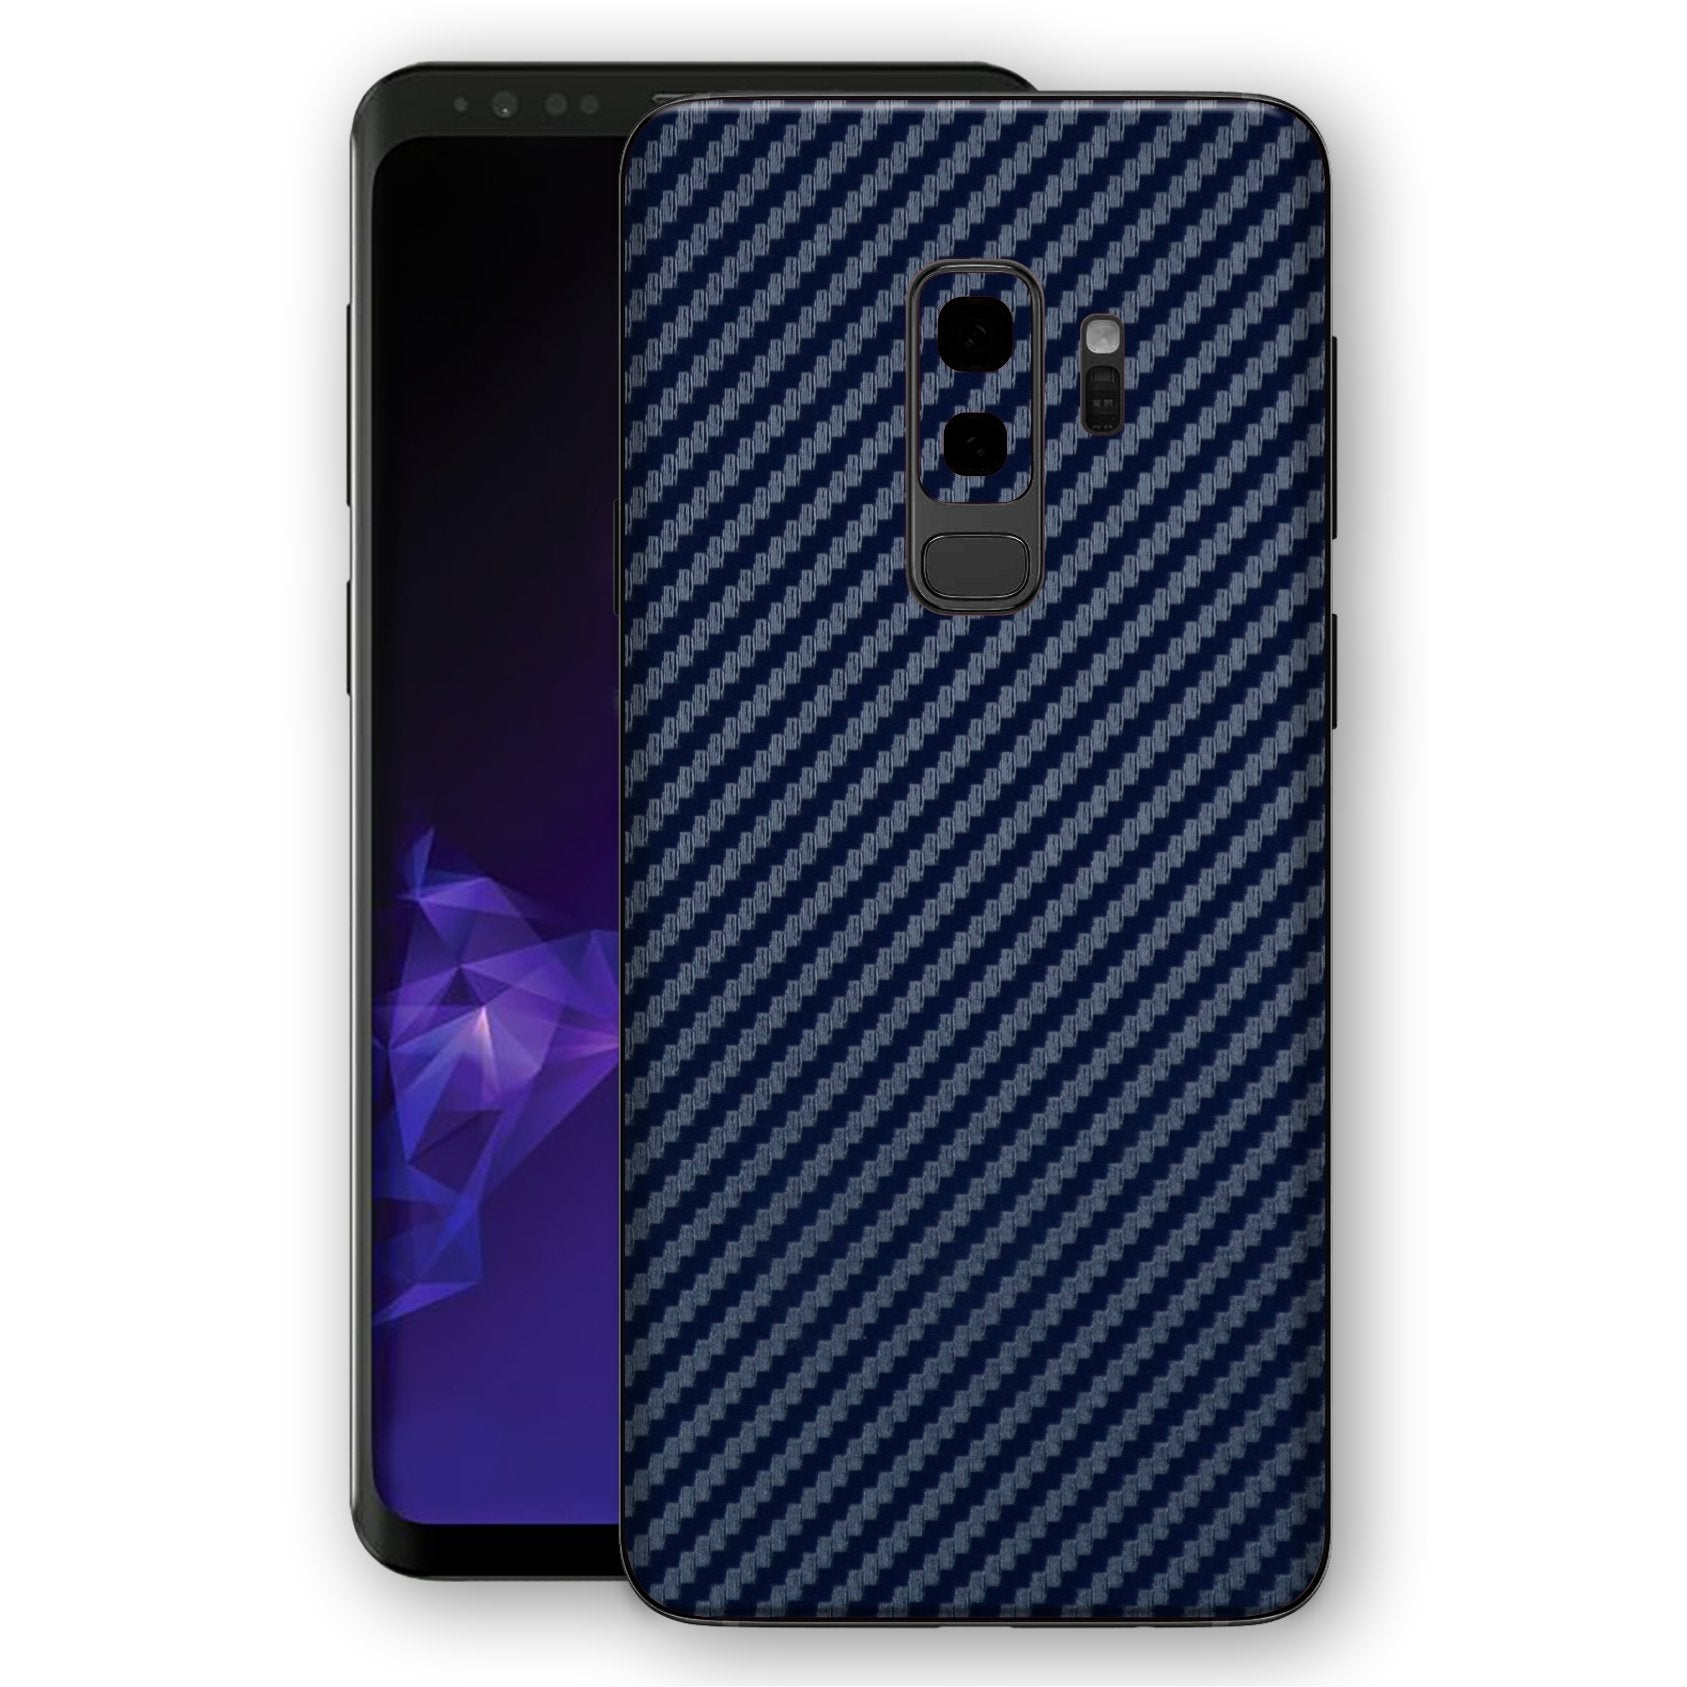 Samsung GALAXY S9+ PLUS 3D Textured Navy Blue Carbon Fibre Fiber Skin, Decal, Wrap, Protector, Cover by EasySkinz | EasySkinz.com